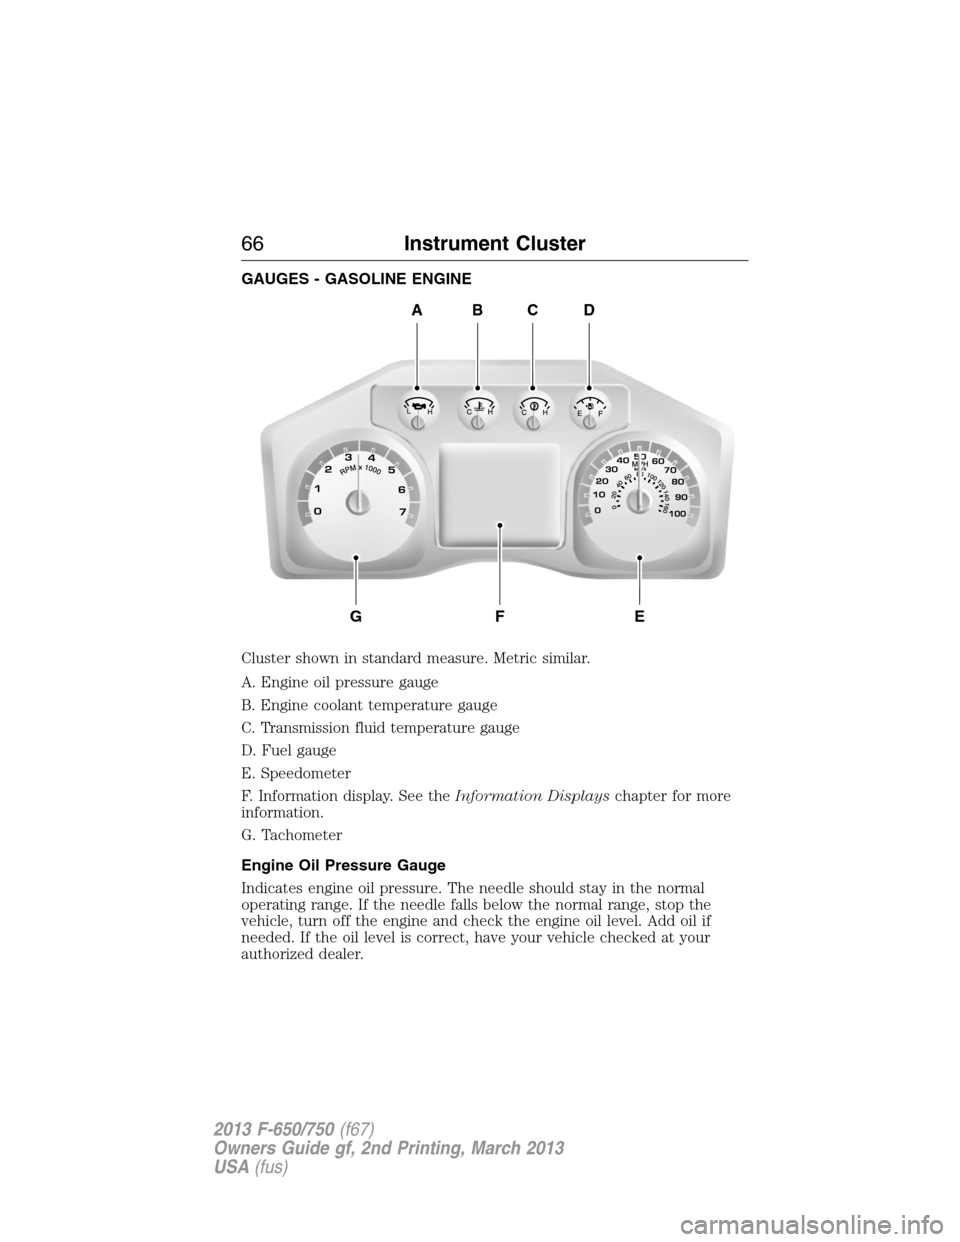 2013 F750 Wiring Diagram Library 2002 Ford For 2 Sd Engine Coolant 12 G Owners Manual Gauge Schematic